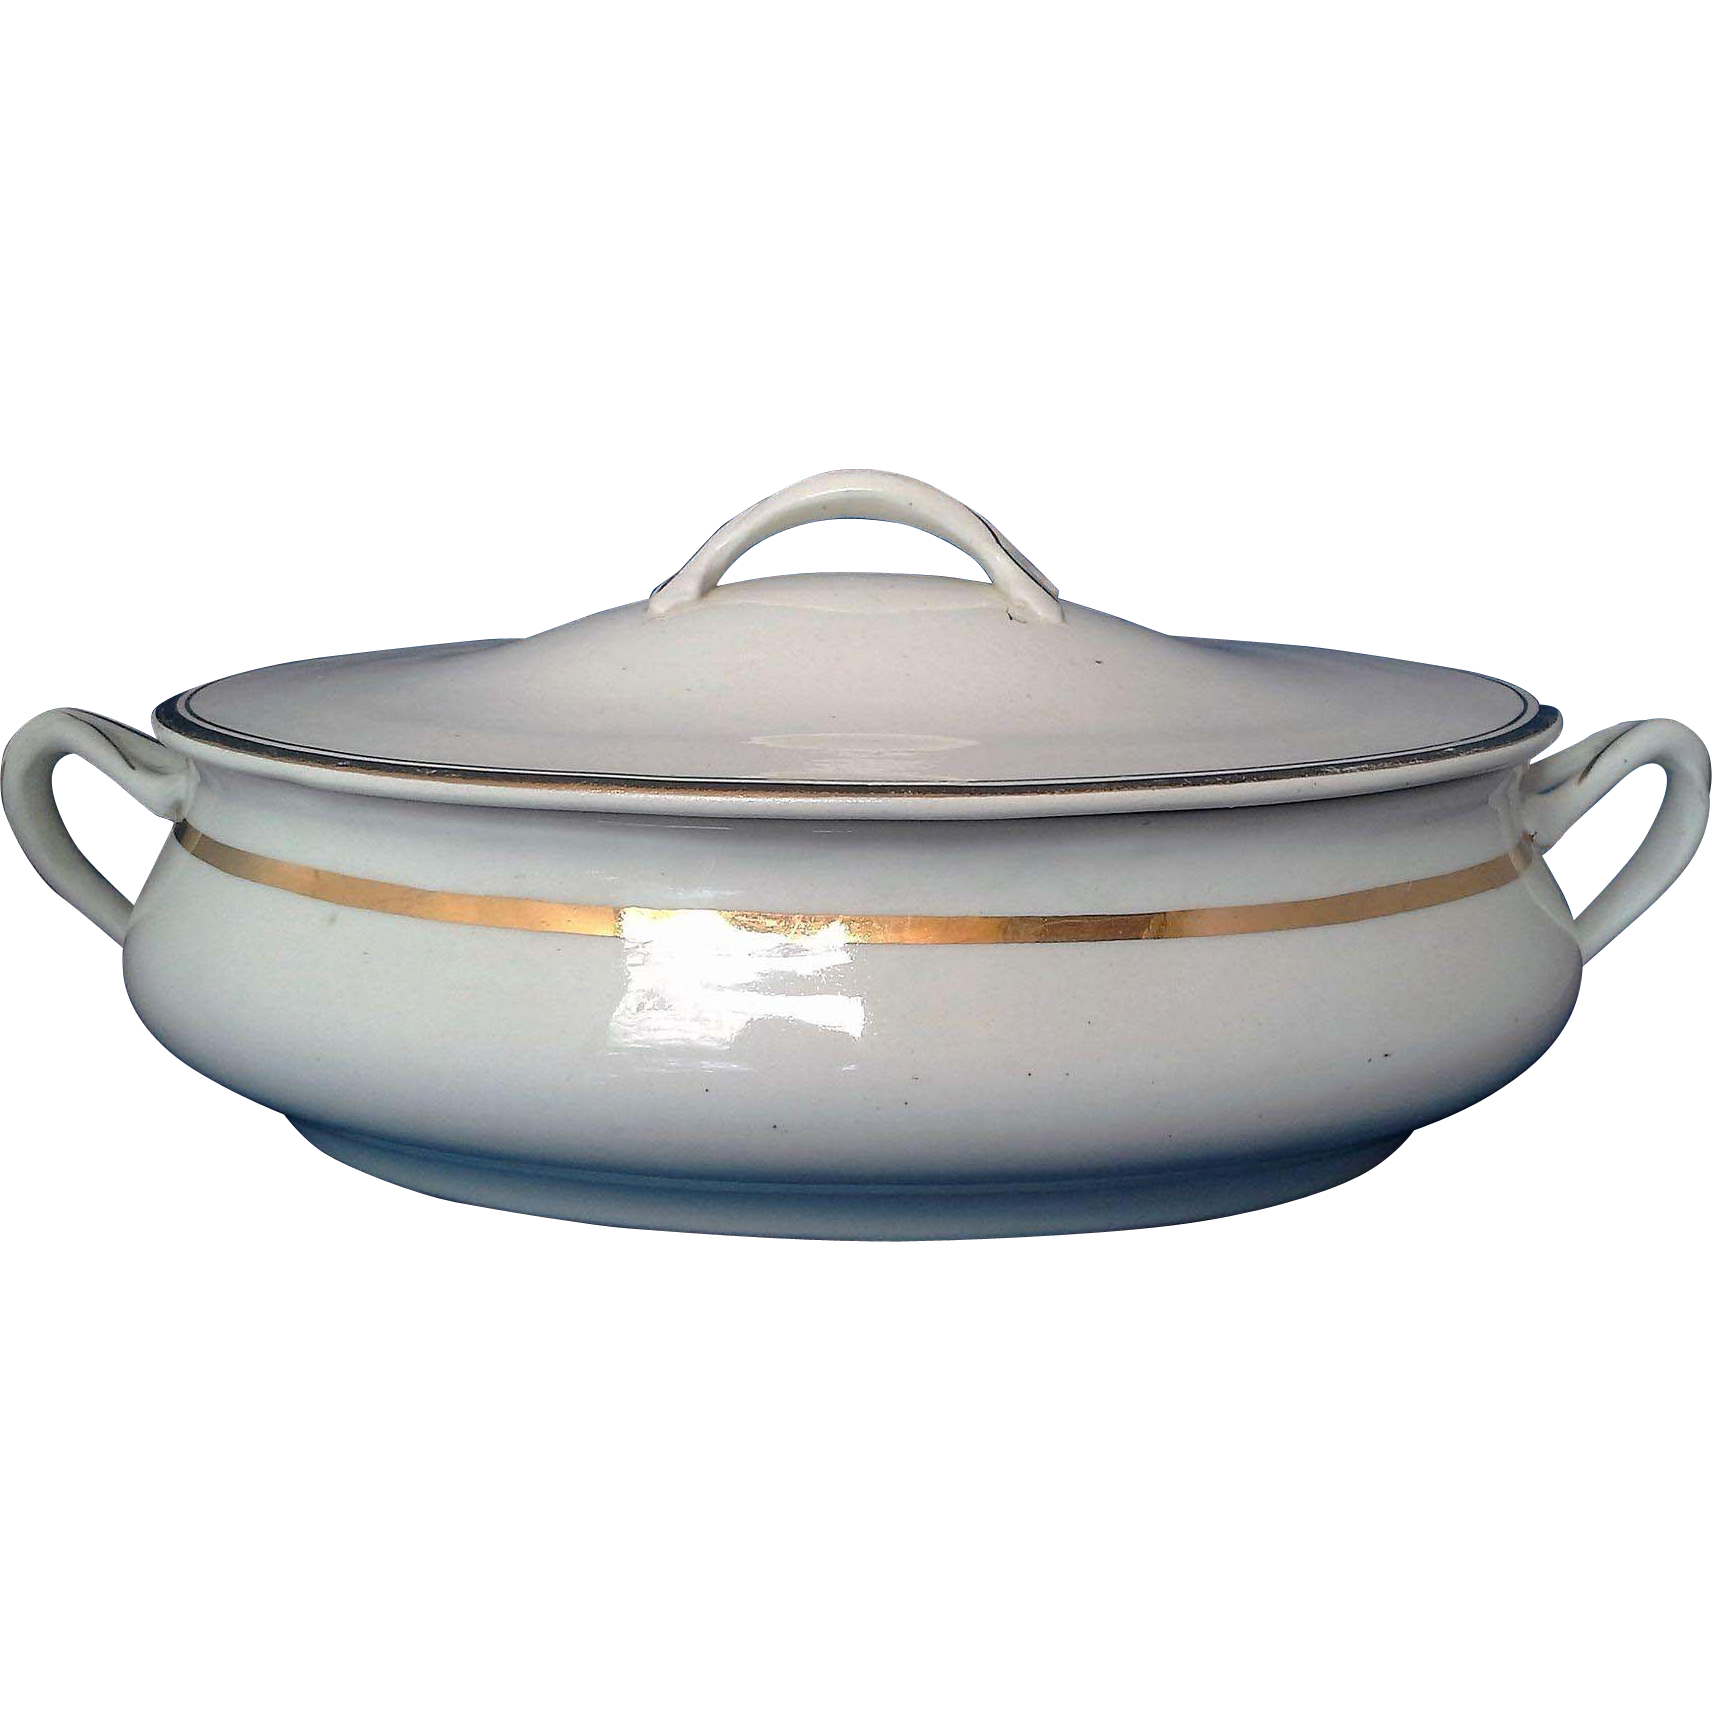 Mount Clemens Pottery Oval Covered Vegetable Dish White Gold Trim